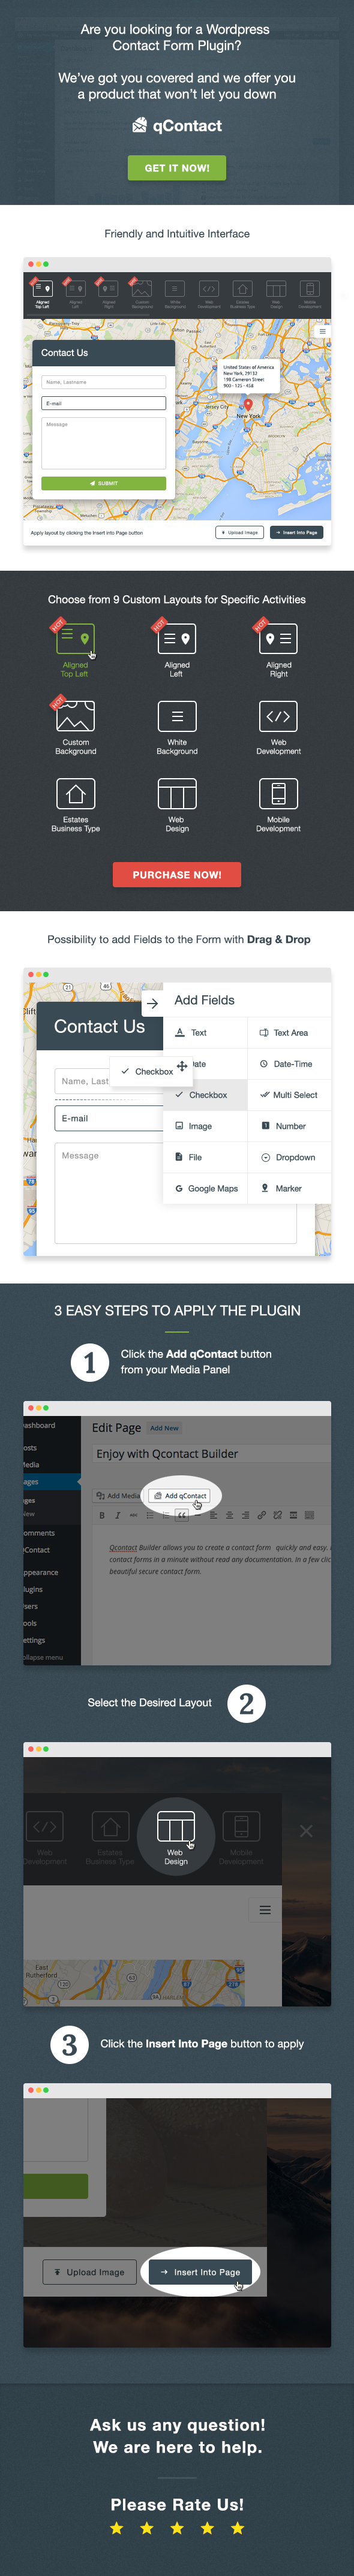 qContact Form Builder - WordPress contact page